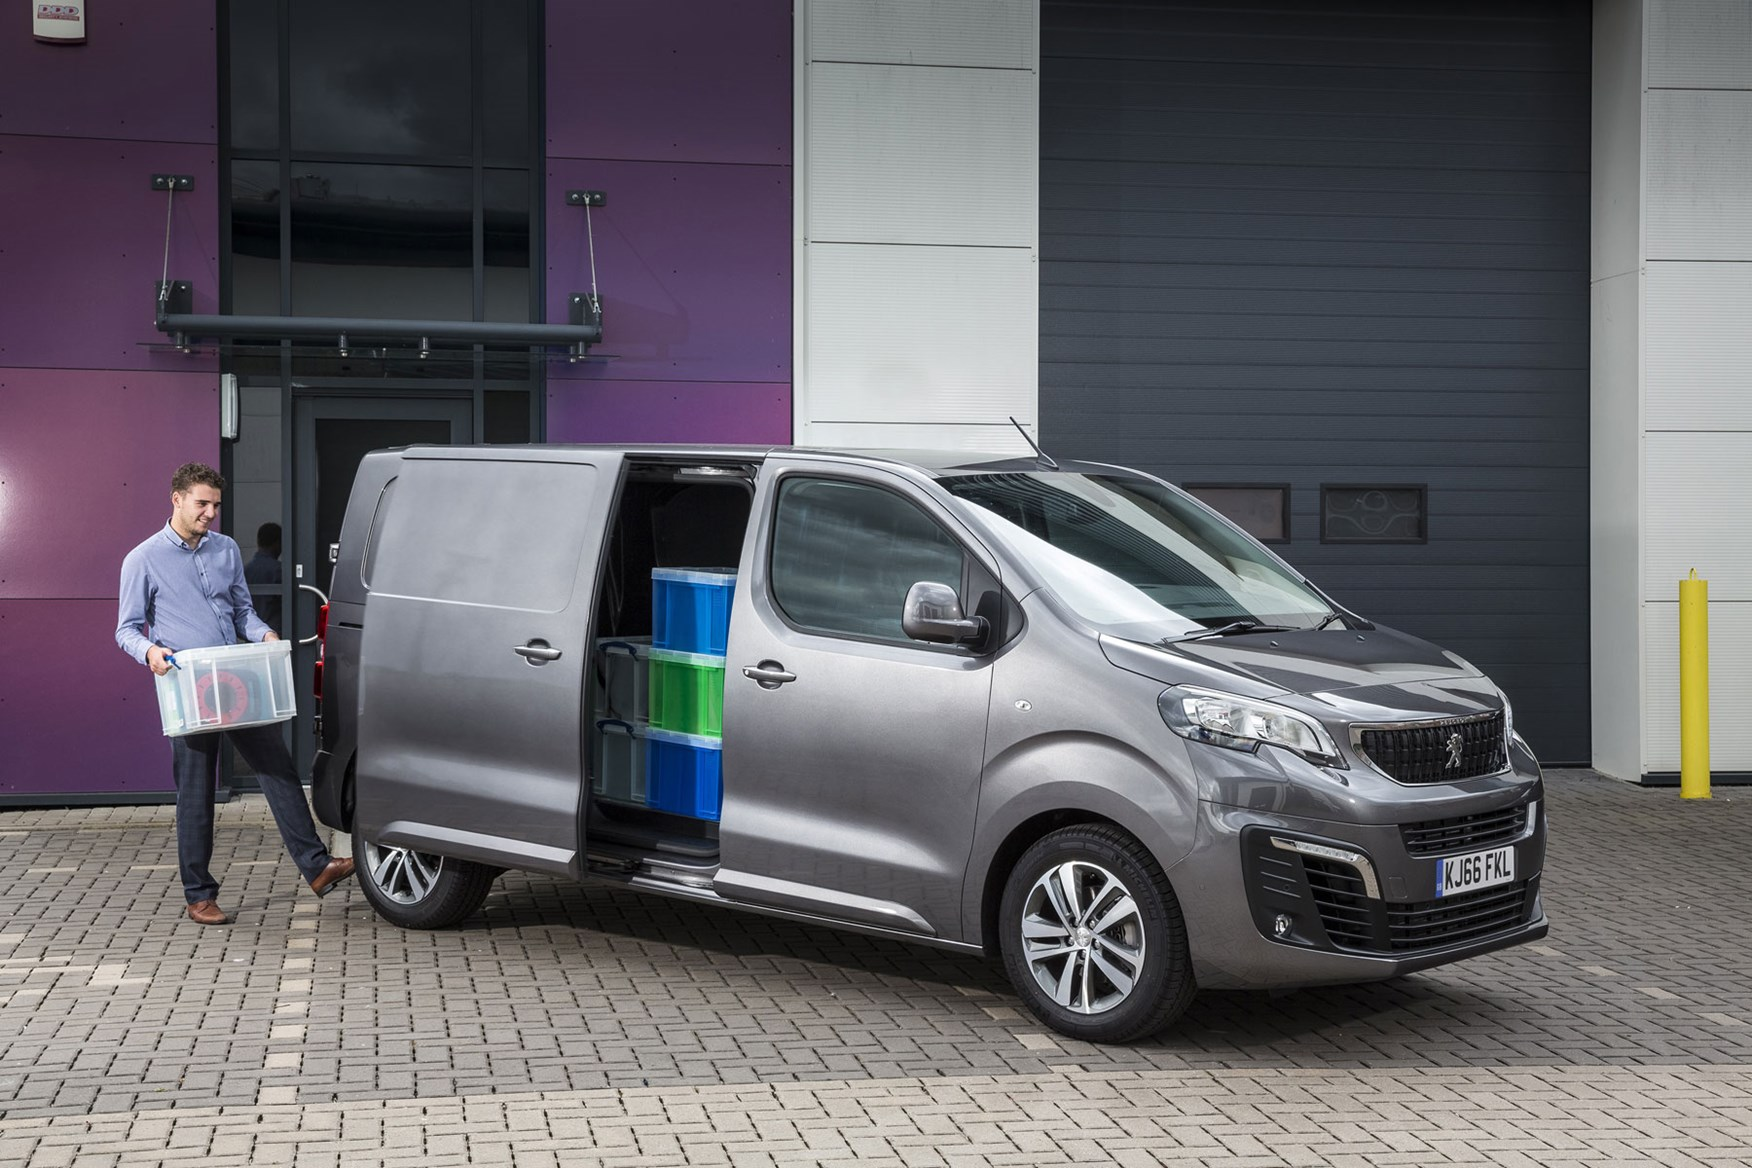 Peugeot Expert - 2016 model, front view, loaded van with man activating electric side doors with foot